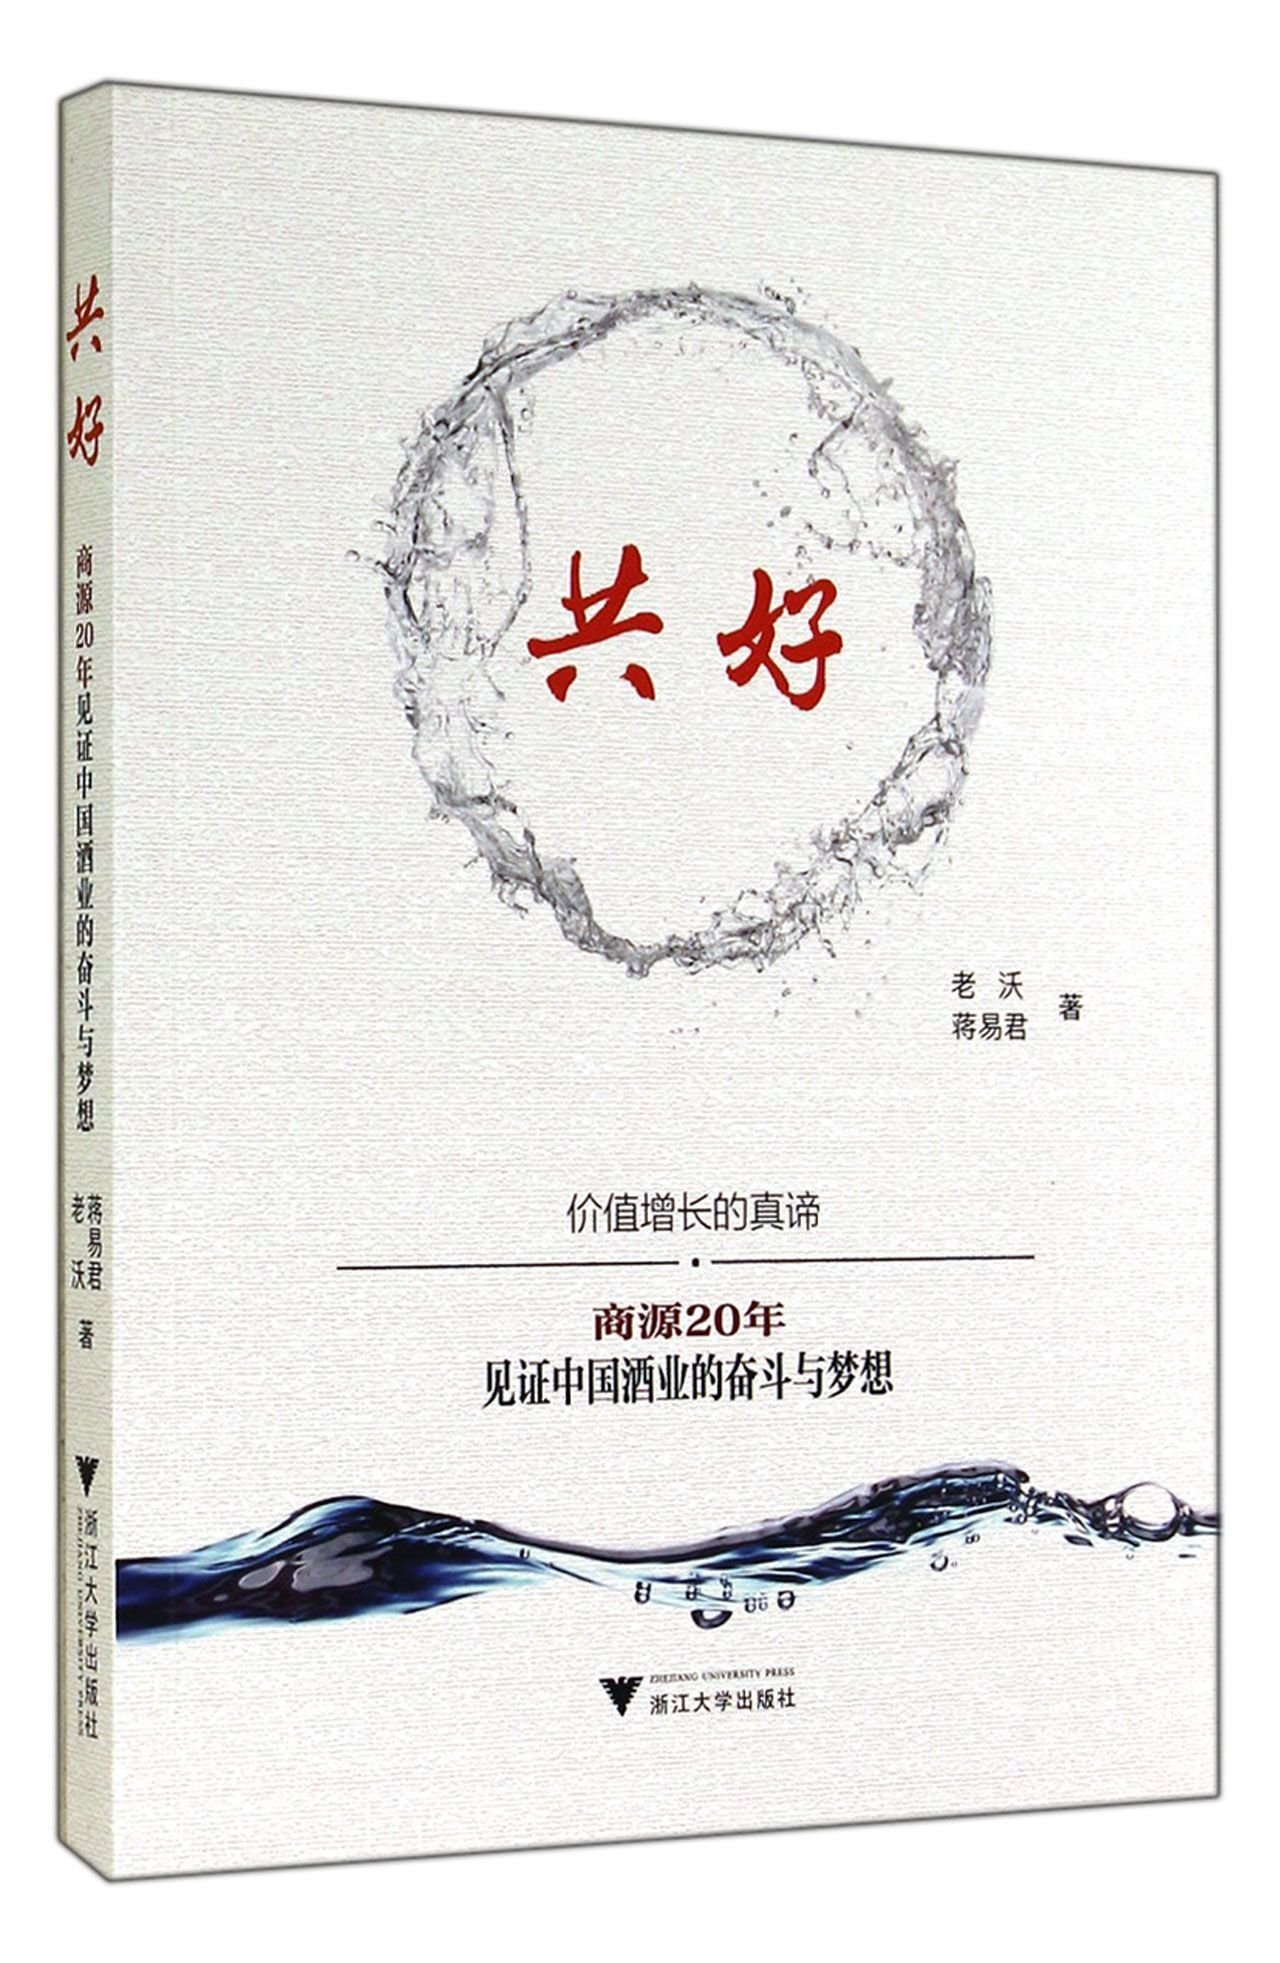 Download Gung Ho: Business Source 20 years witnessed China's wine industry struggles and dreams(Chinese Edition) PDF